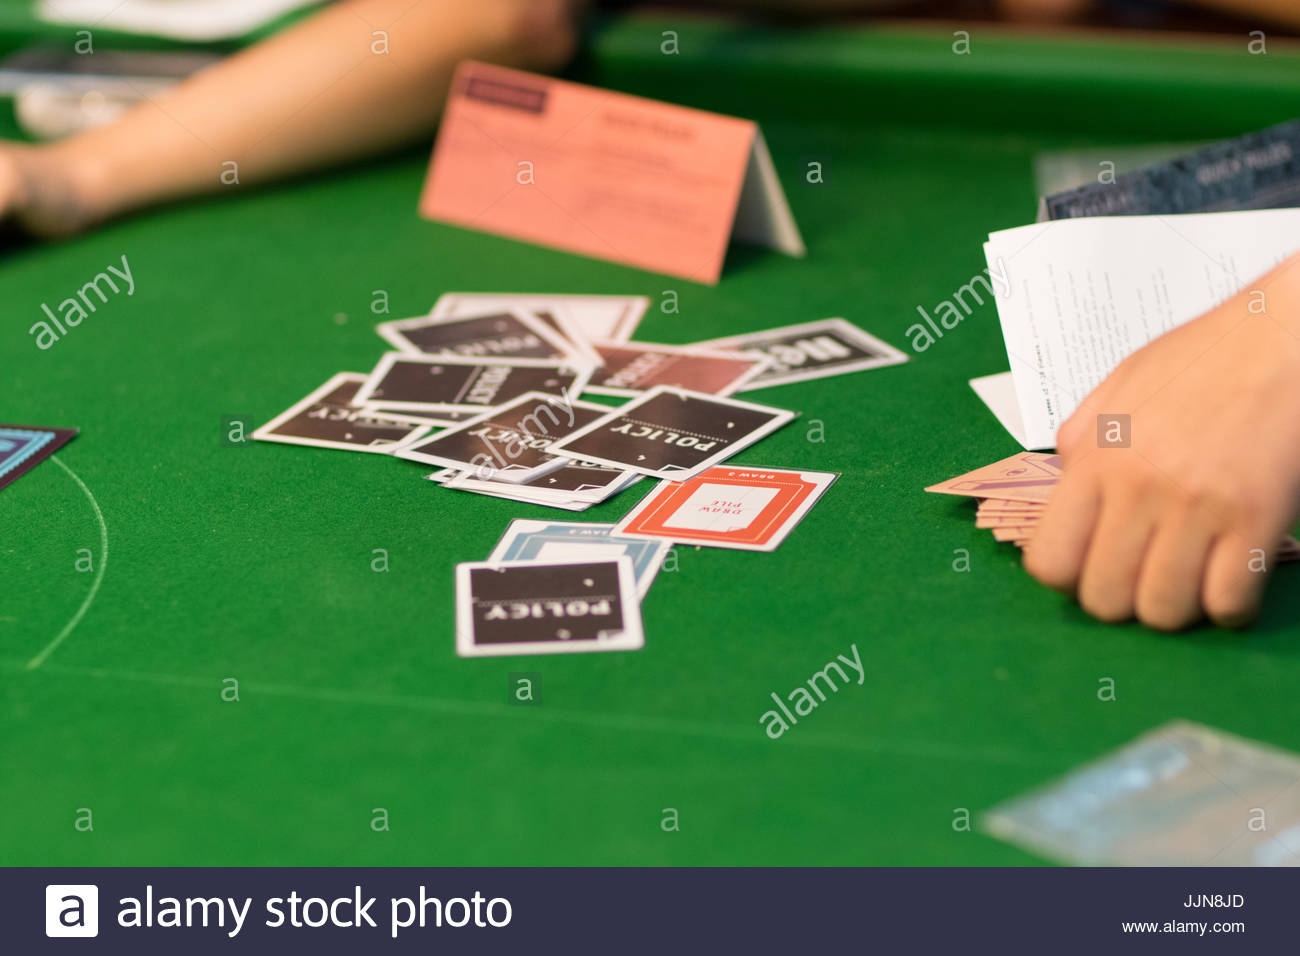 Where to buy poker cards in bangkok roulette no download play free